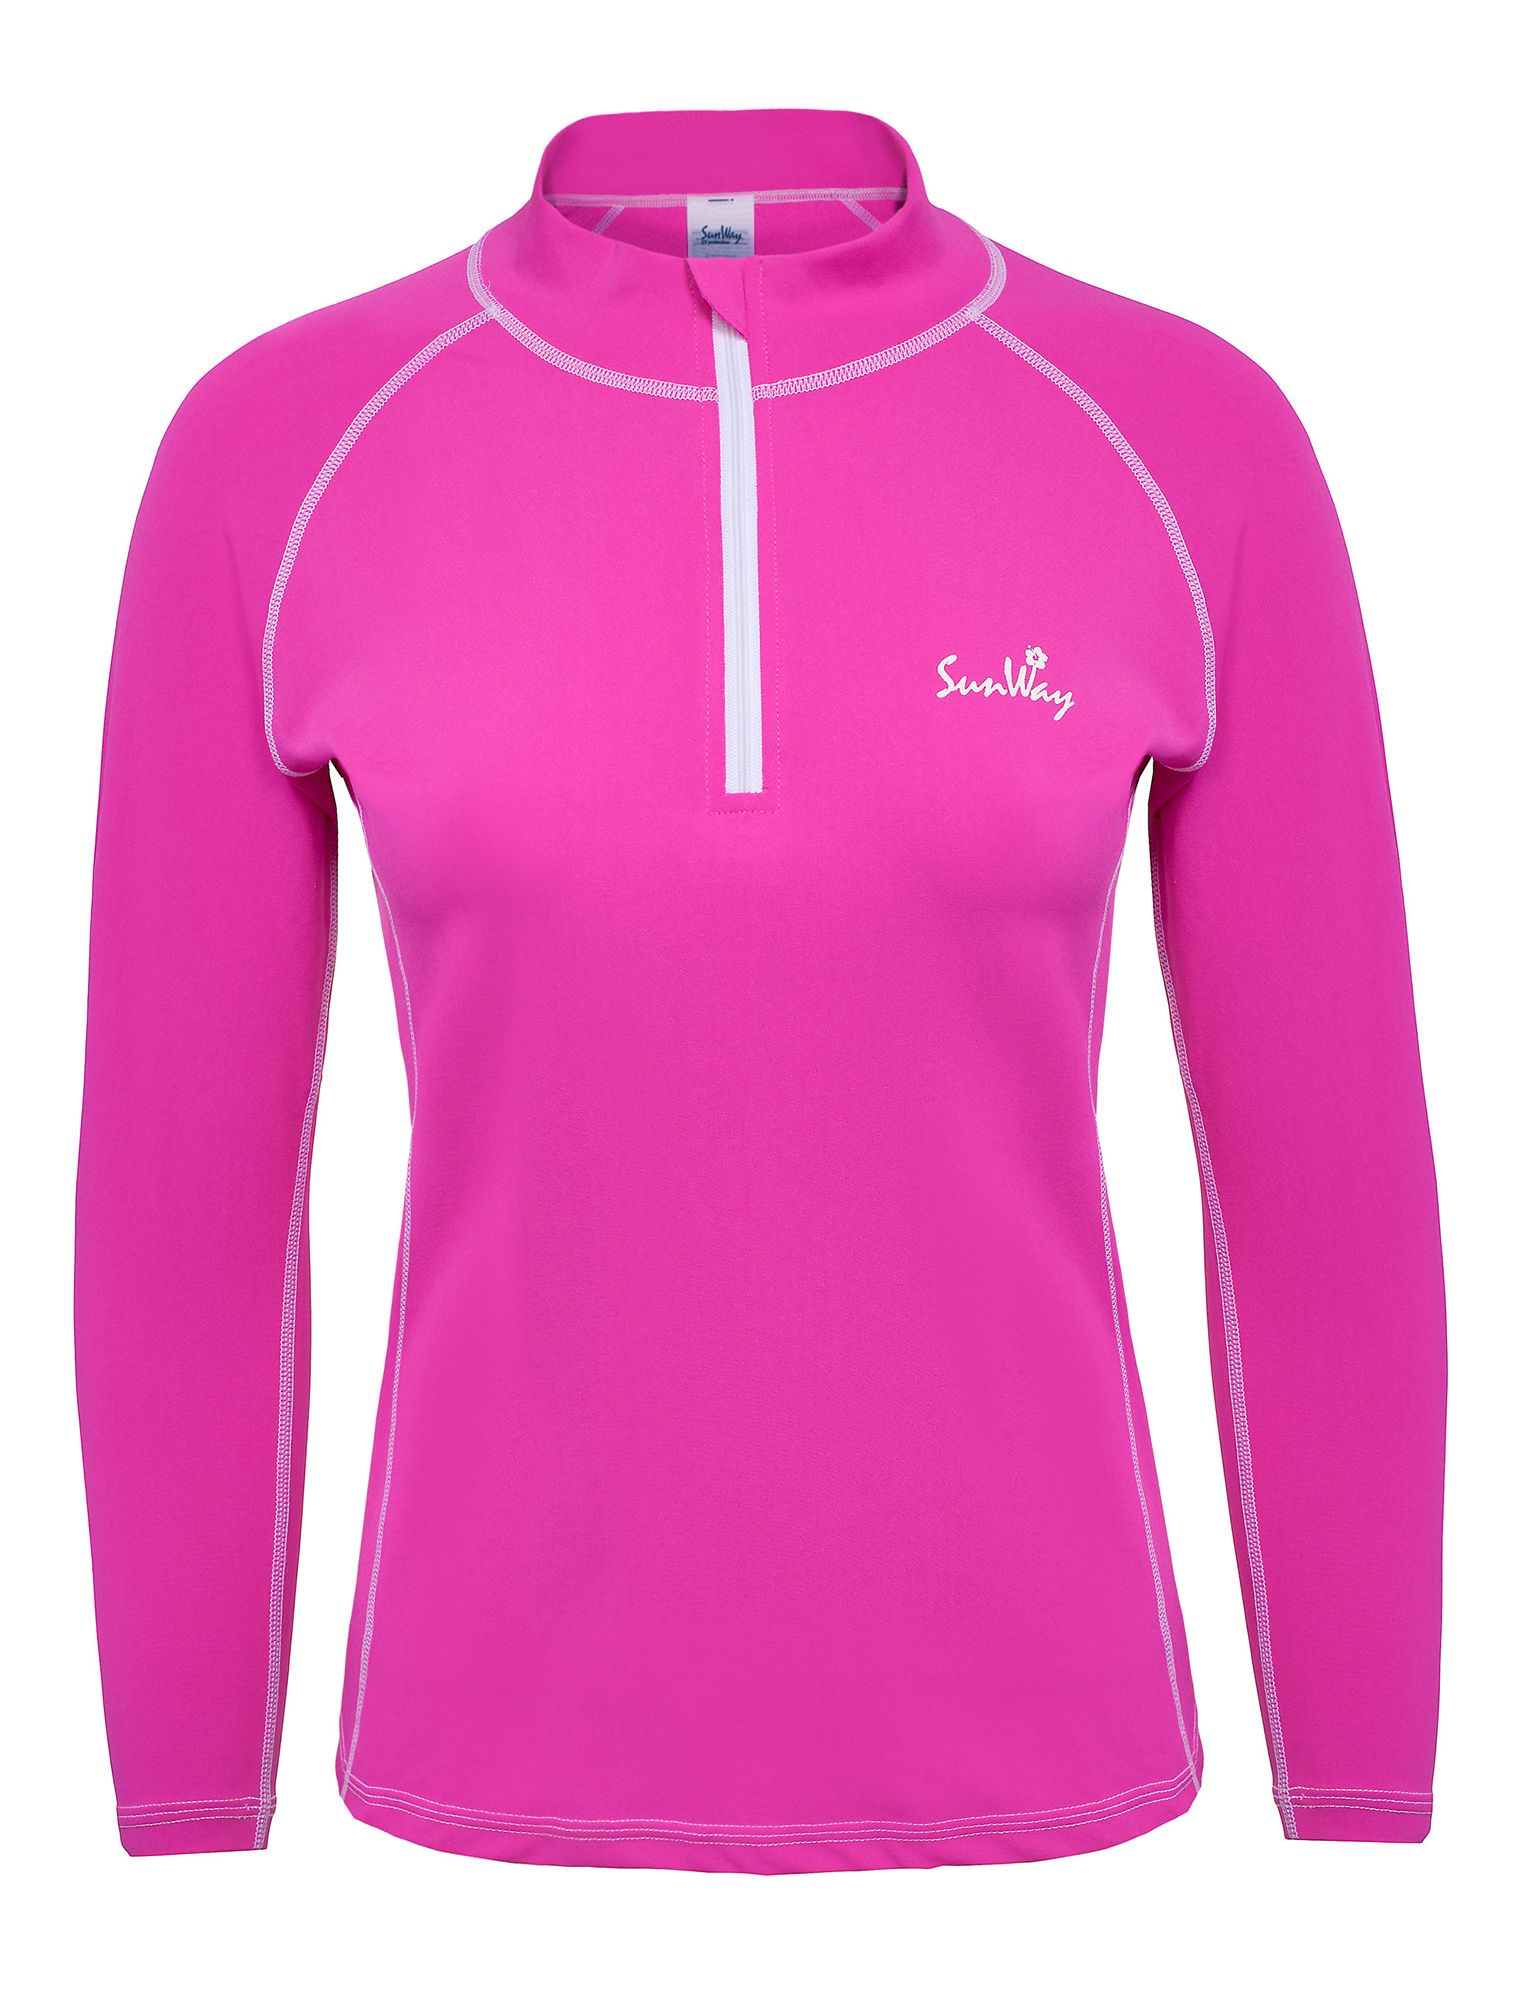 Women's Long Sleeve Pink UV Swim Shirt